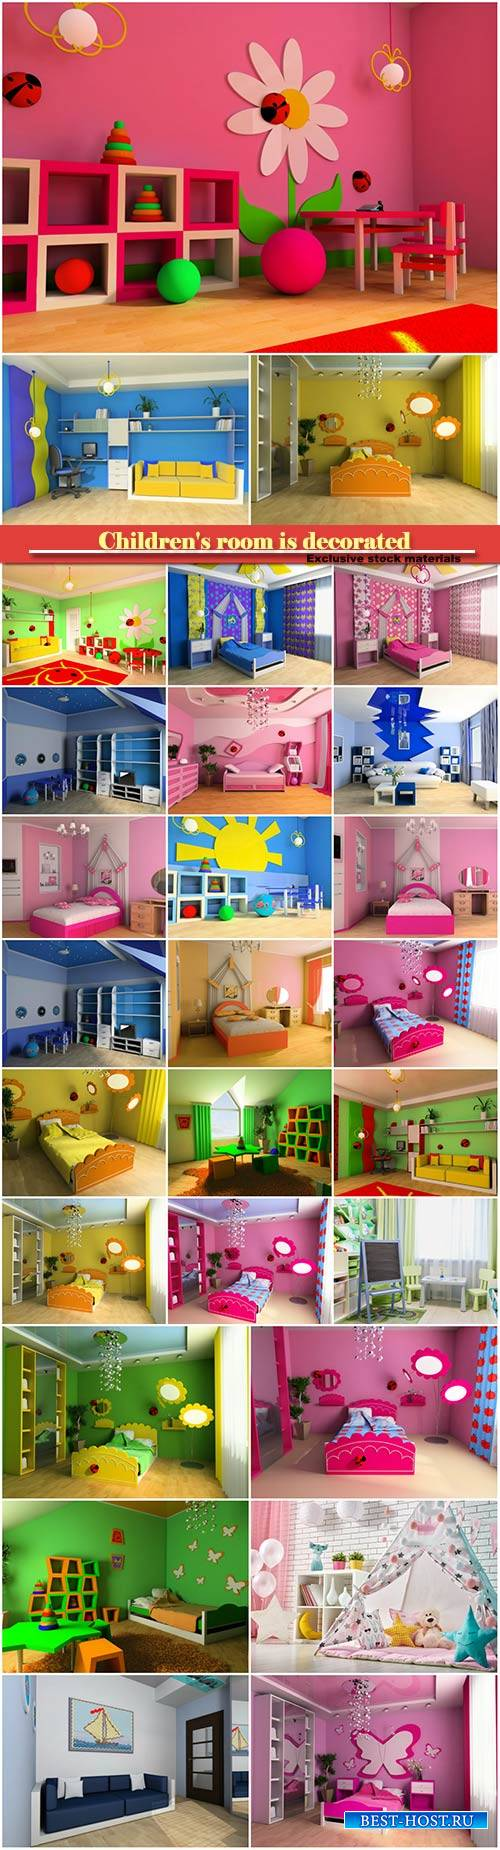 Children's room is decorated in pink, blue and green tones